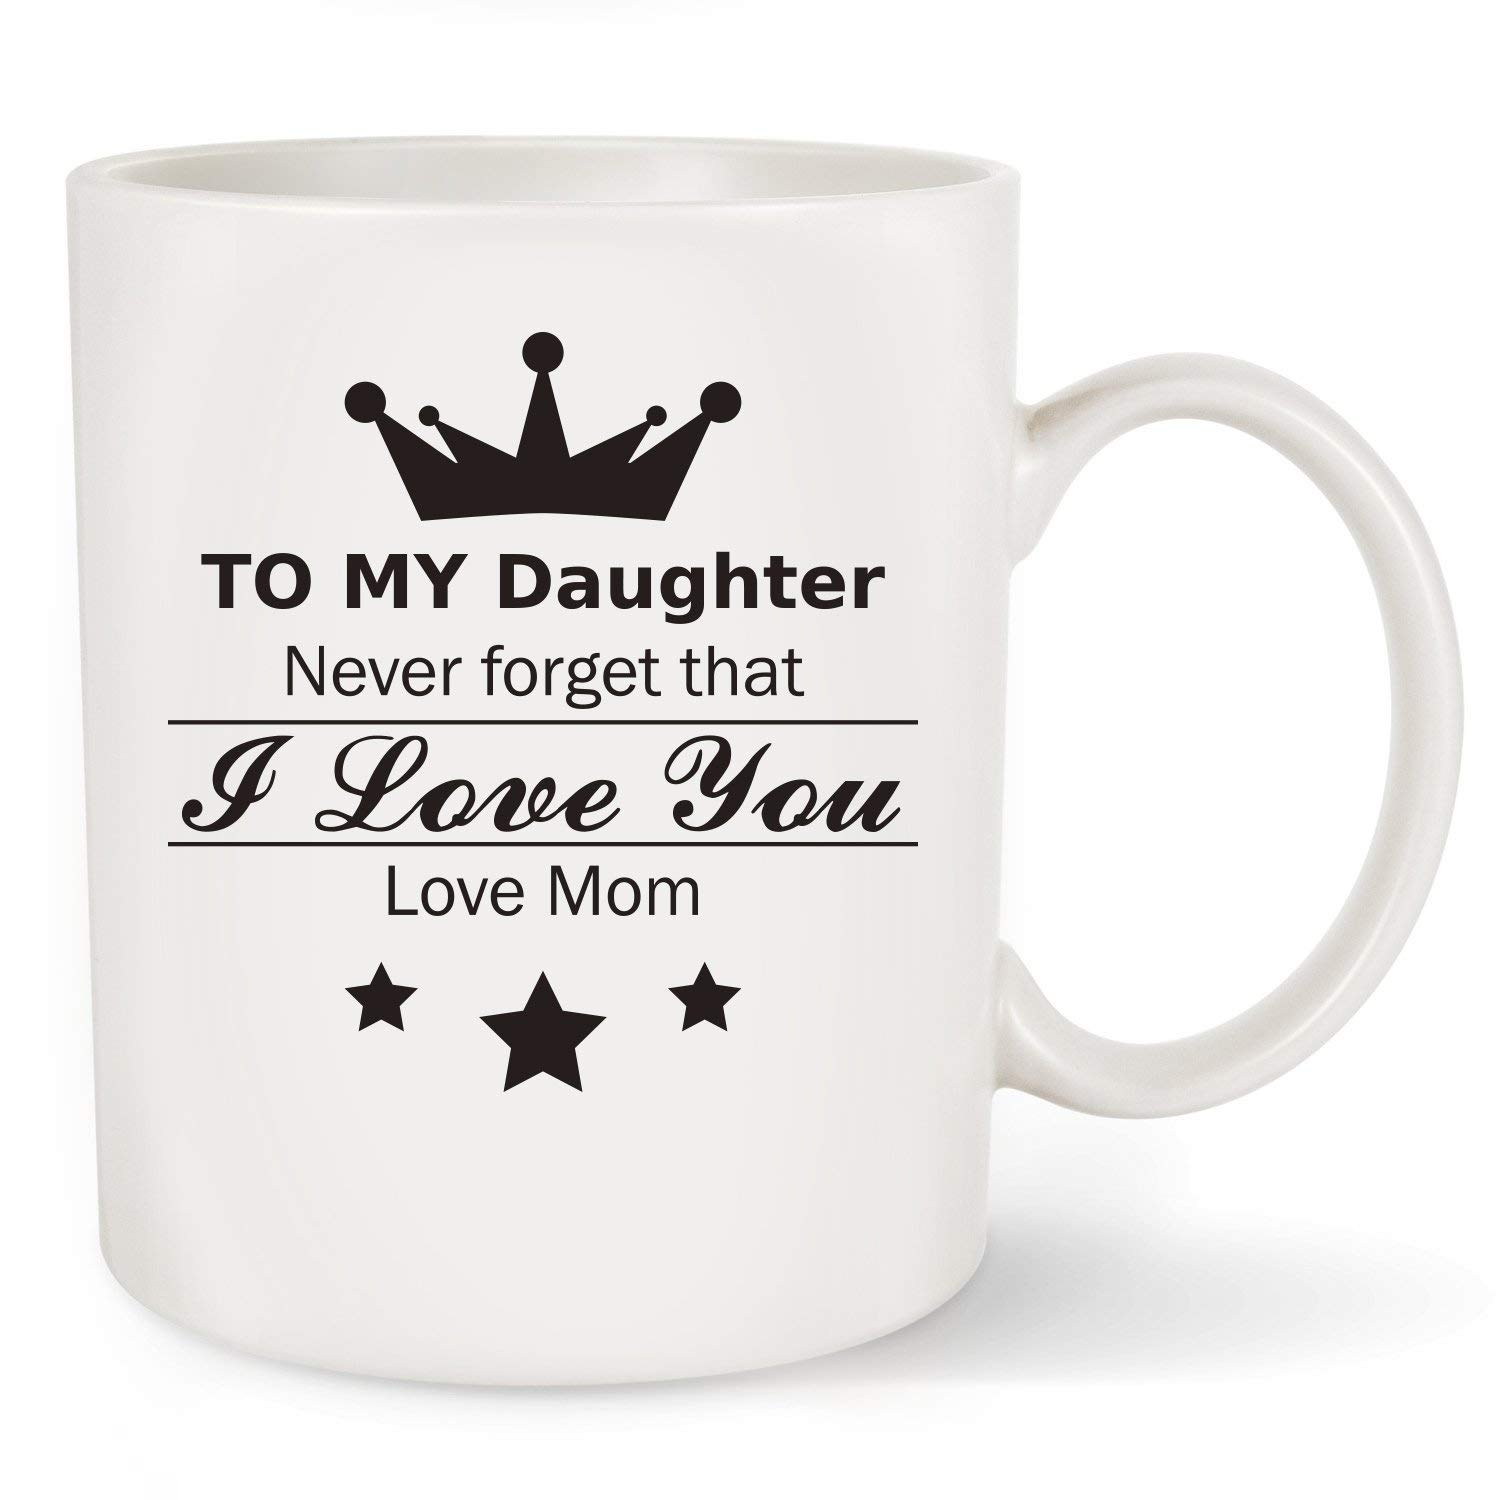 """Gift For Daughter, """" To My Daughter - Love Mom"""" Coffee Mug To Daughter From Mom For Christmas, Xmas, Birthday, Wedding, Graduation Gift (To My Daughter - Love Mom Mug)"""